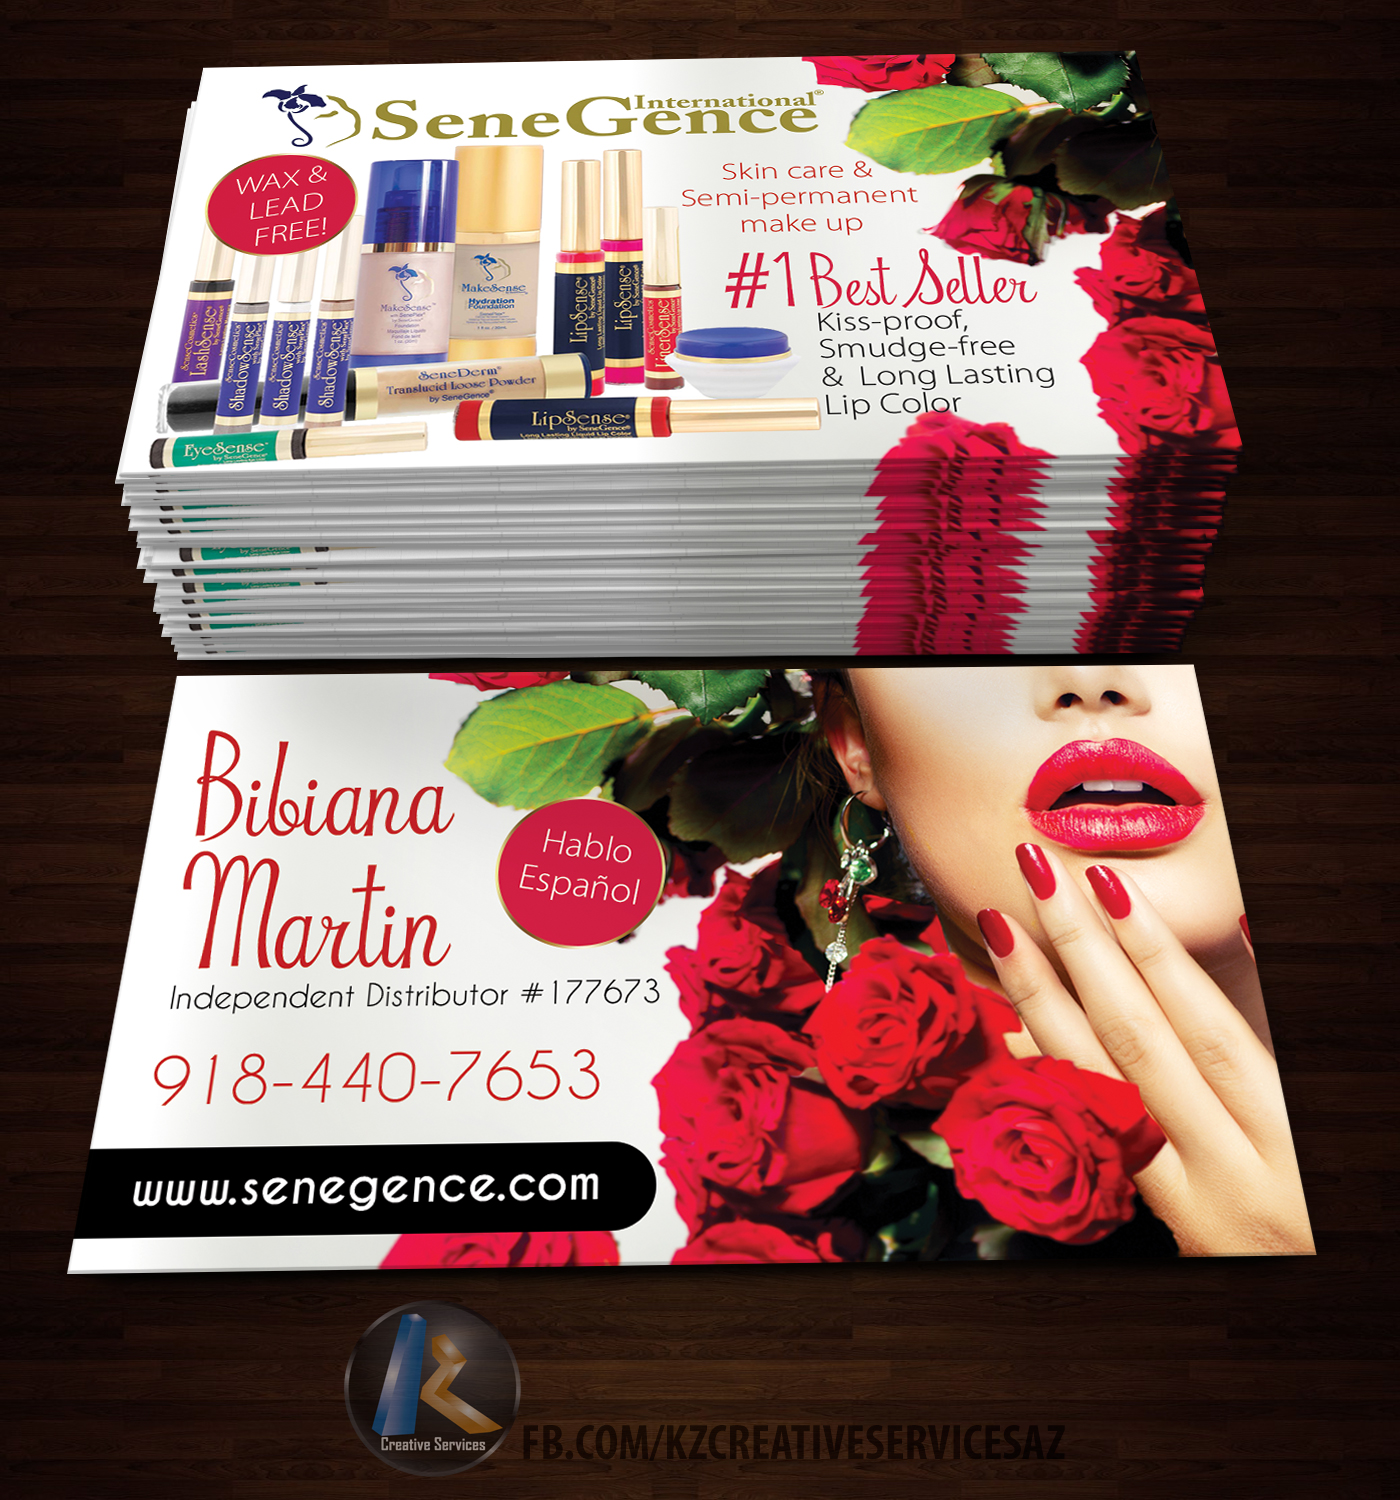 SENEGENCE Business Cards style 1 · KZ Creative Services · line